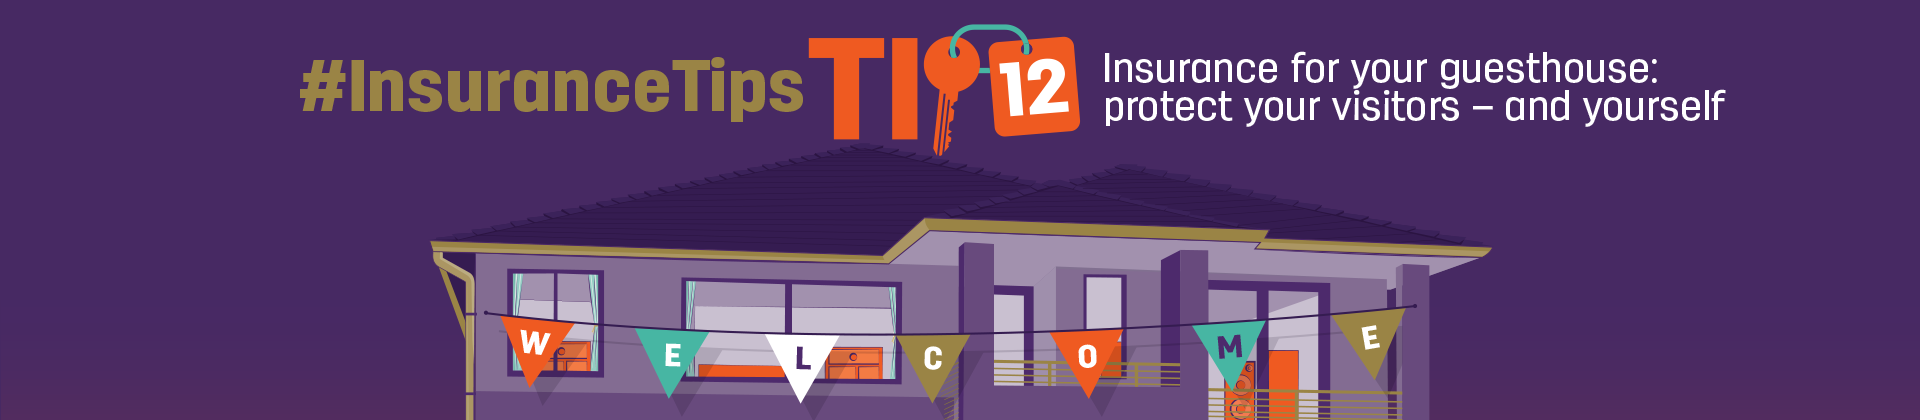 #InsuranceTips Tip 12: Insurance for your guesthouse: protect your visitors - and yourself